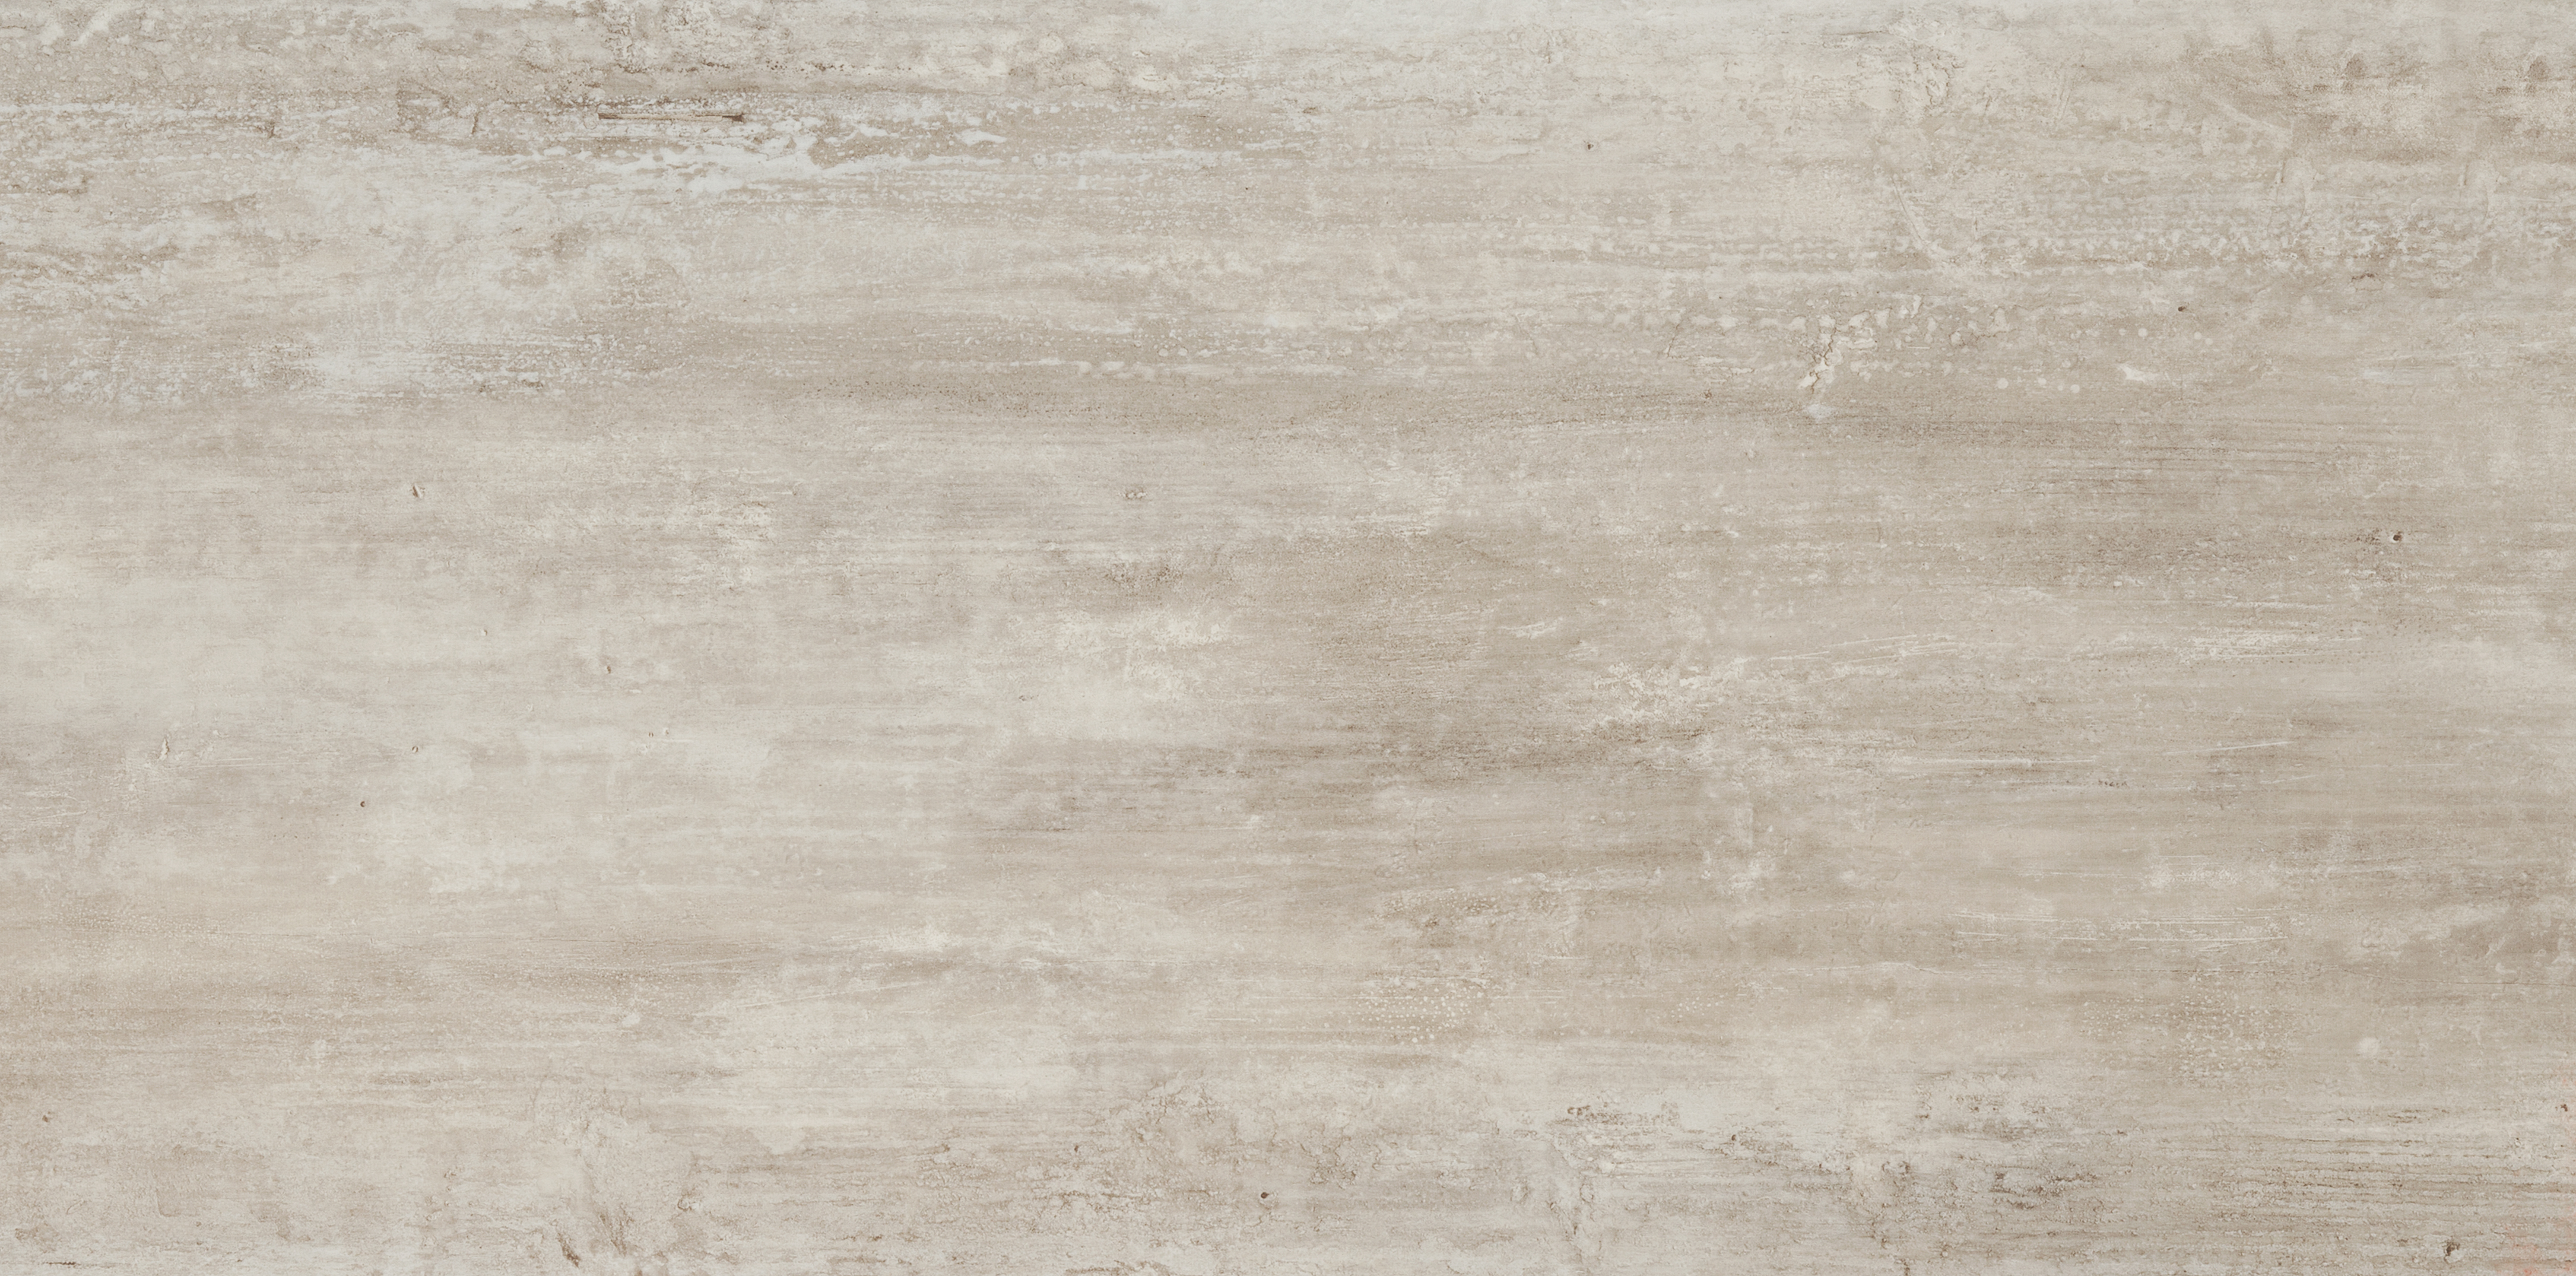 Винил Wonderful Vinyl Floor Фоджа  610*305*4.2мм в уп 2.232м2